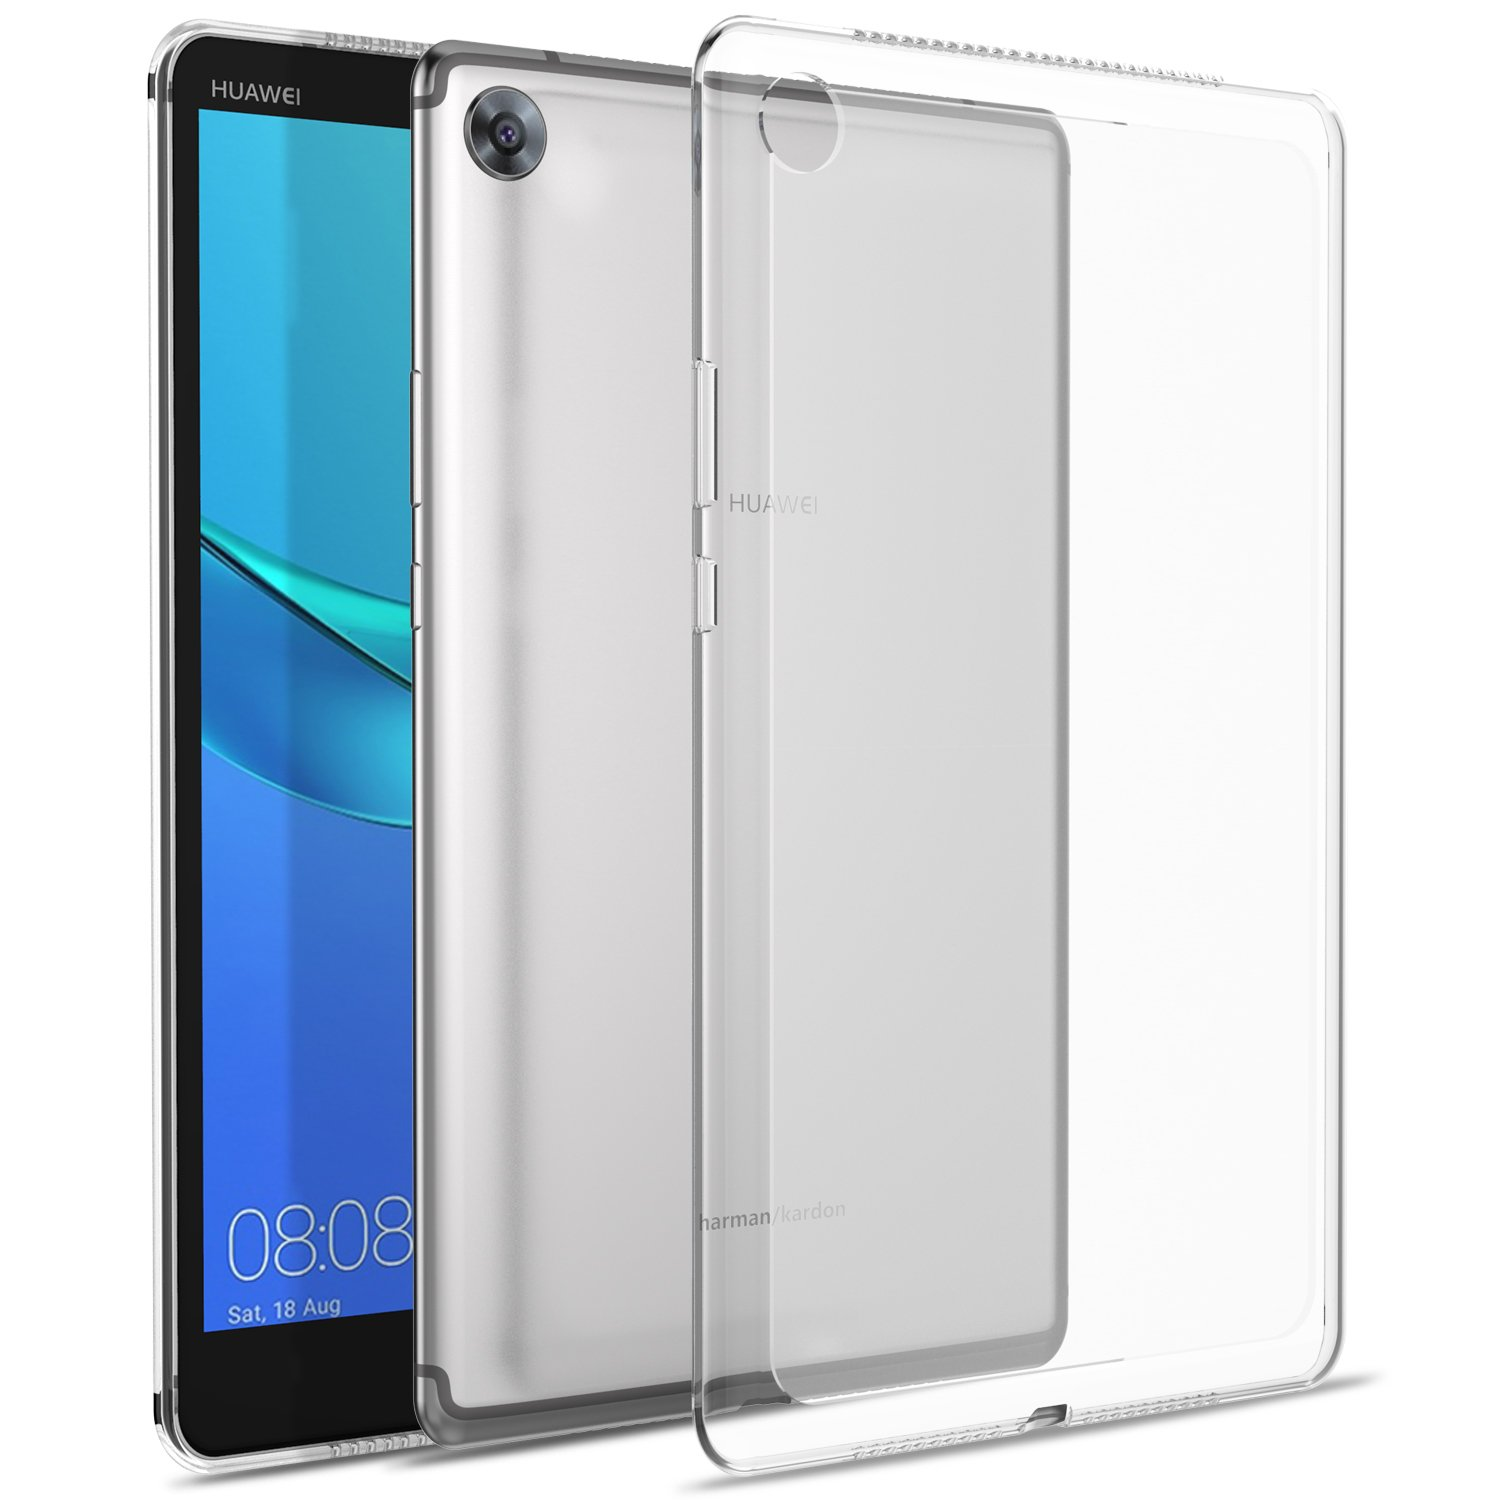 official photos d2460 e859d ELTD TPU Case for Huawei MediaPad M5 8.4, TPU Protective Back Case Cover  for Huawei MediaPad M5 8 Inch 2018 (Clear)